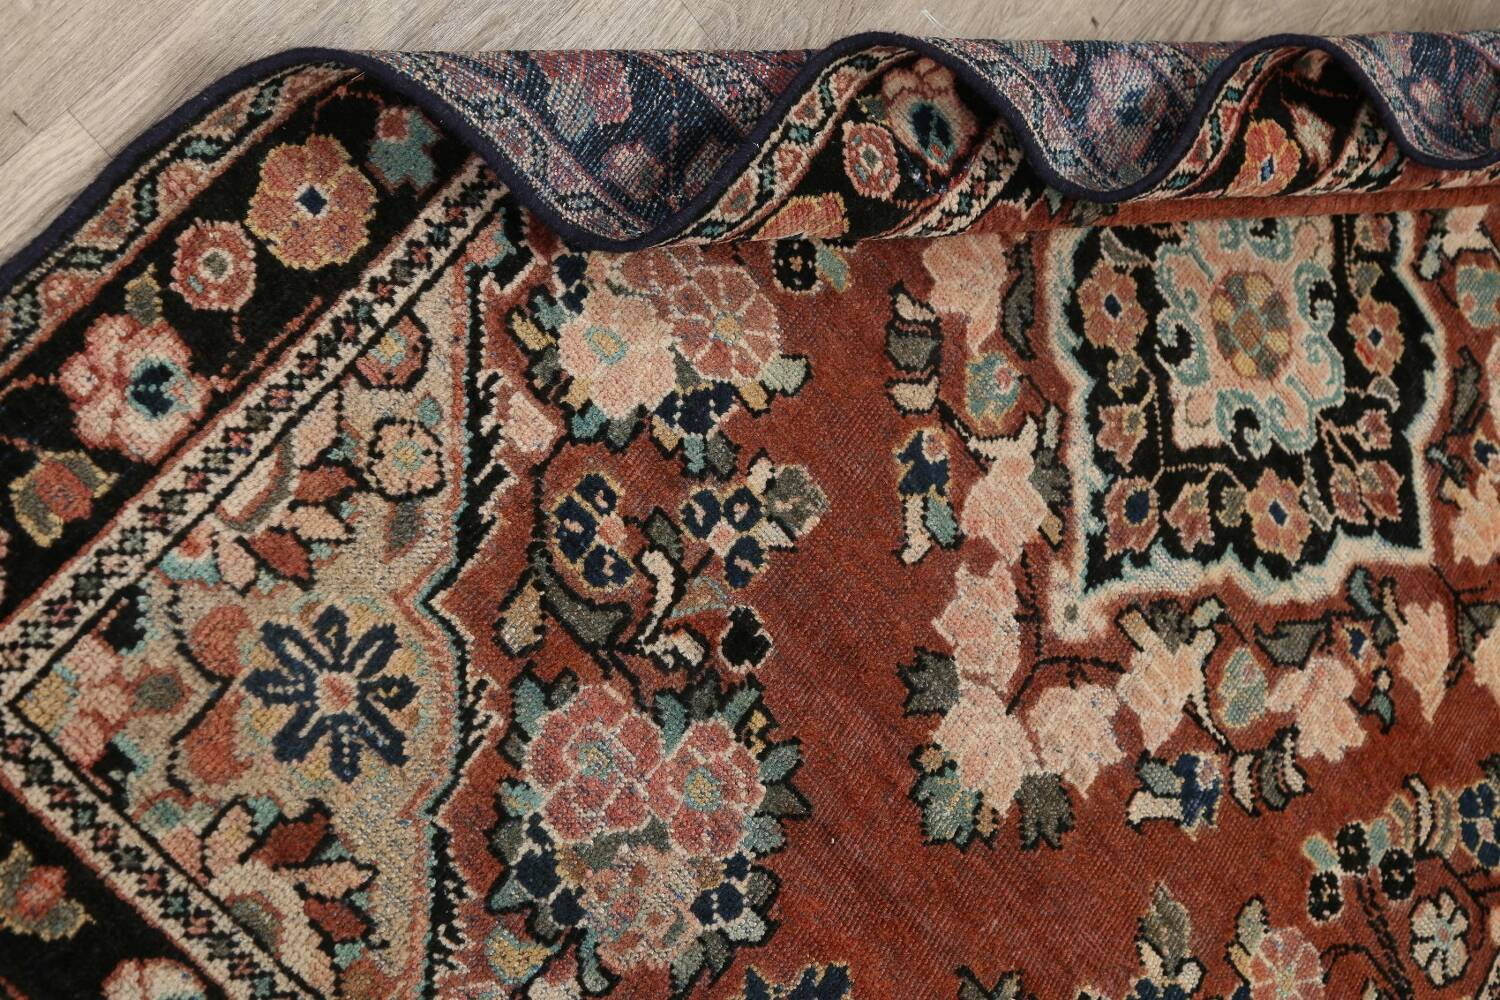 Antique Floral Mahal Persian Area Rug 4x6 image 16